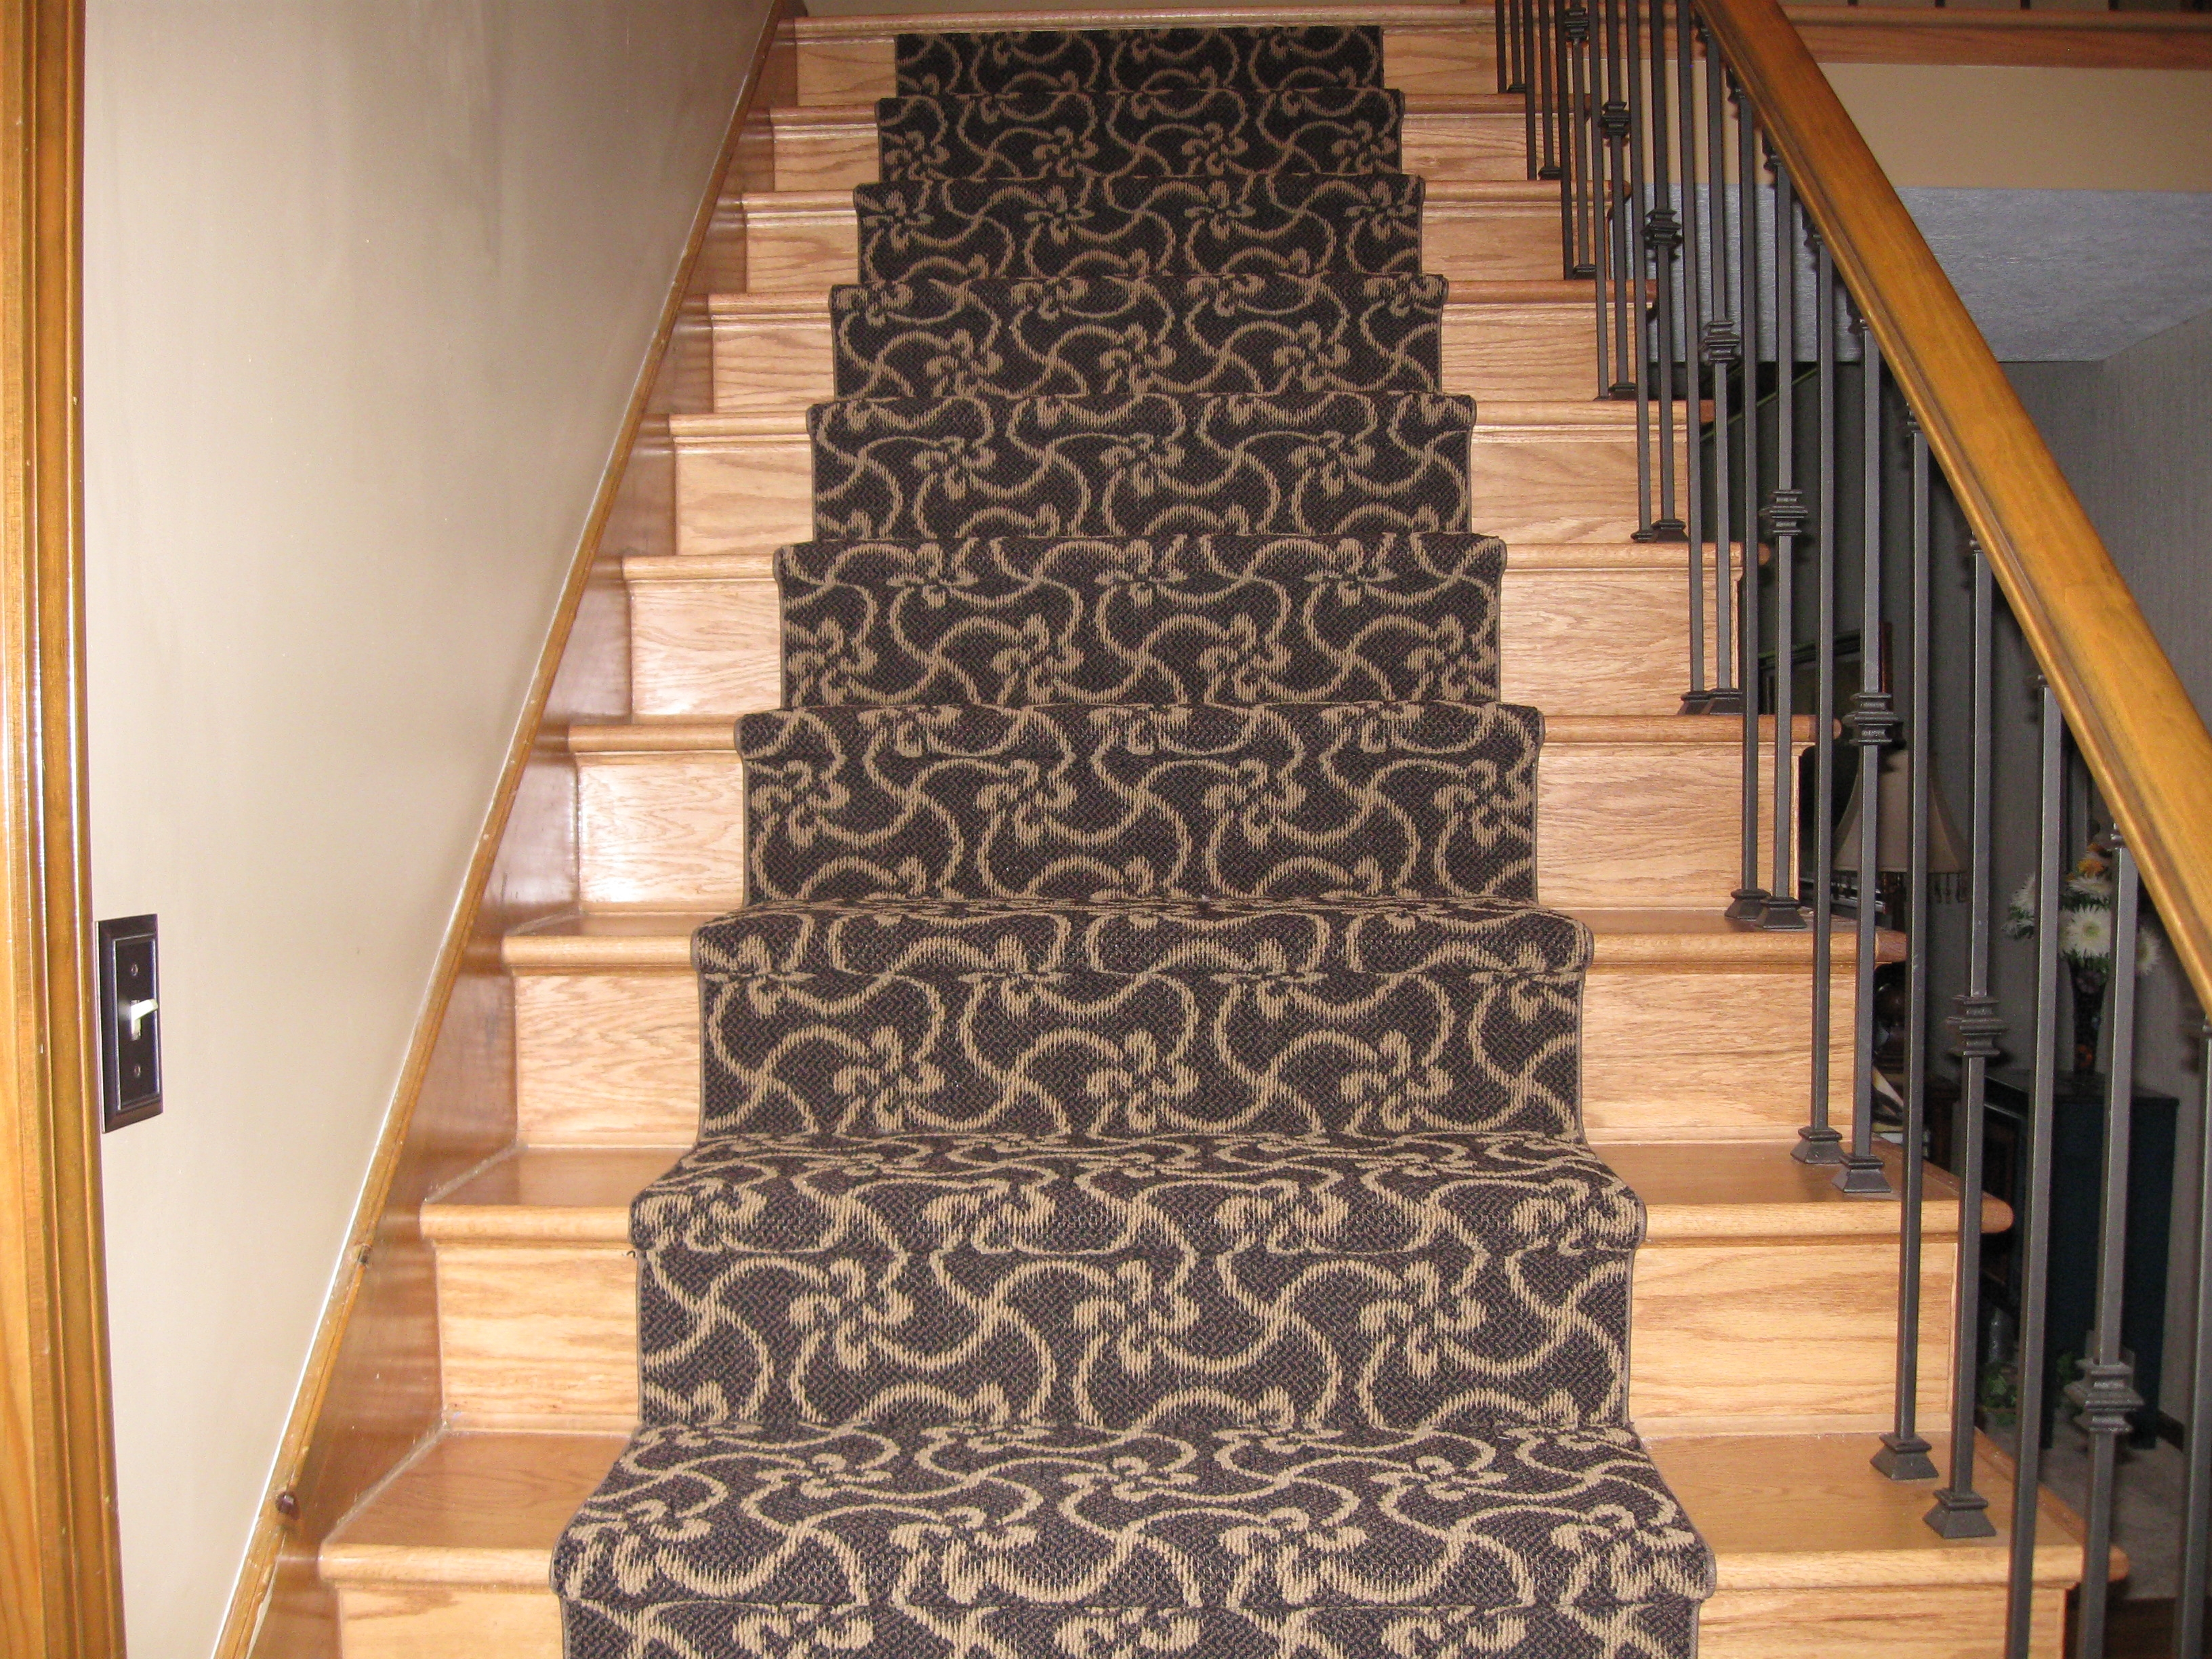 Real Estate Tips Installing Carpet Runner On Wood Stairs Within Carpet For Wood Stairs (View 14 of 15)